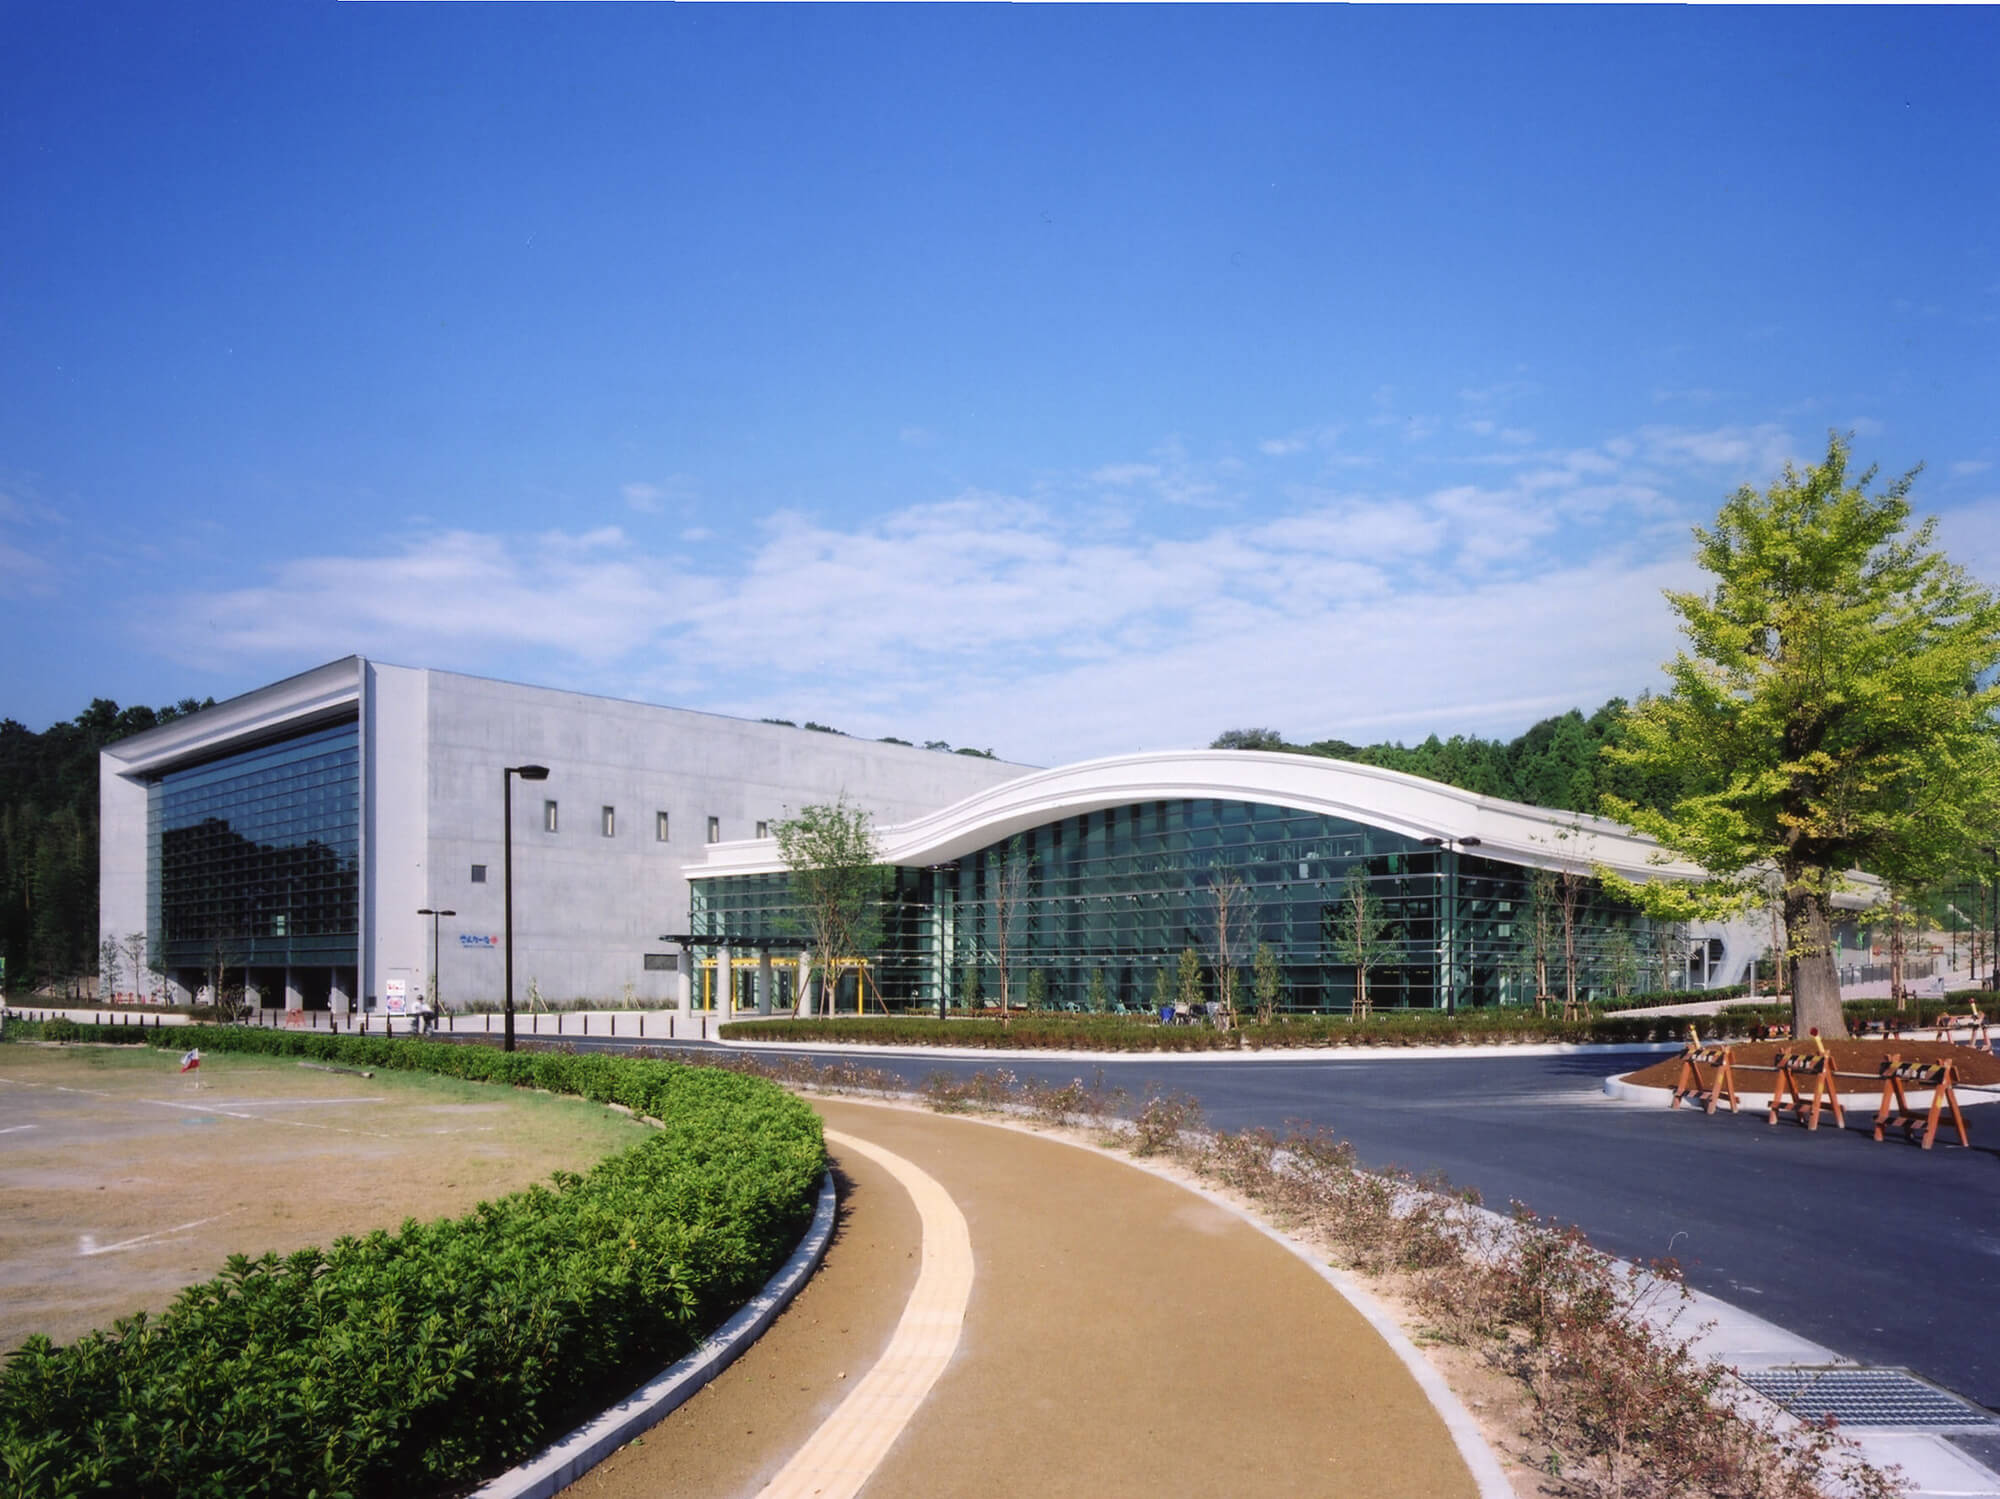 Nagoya Civic General Gymnasium Nippongaishi Sports Plaza